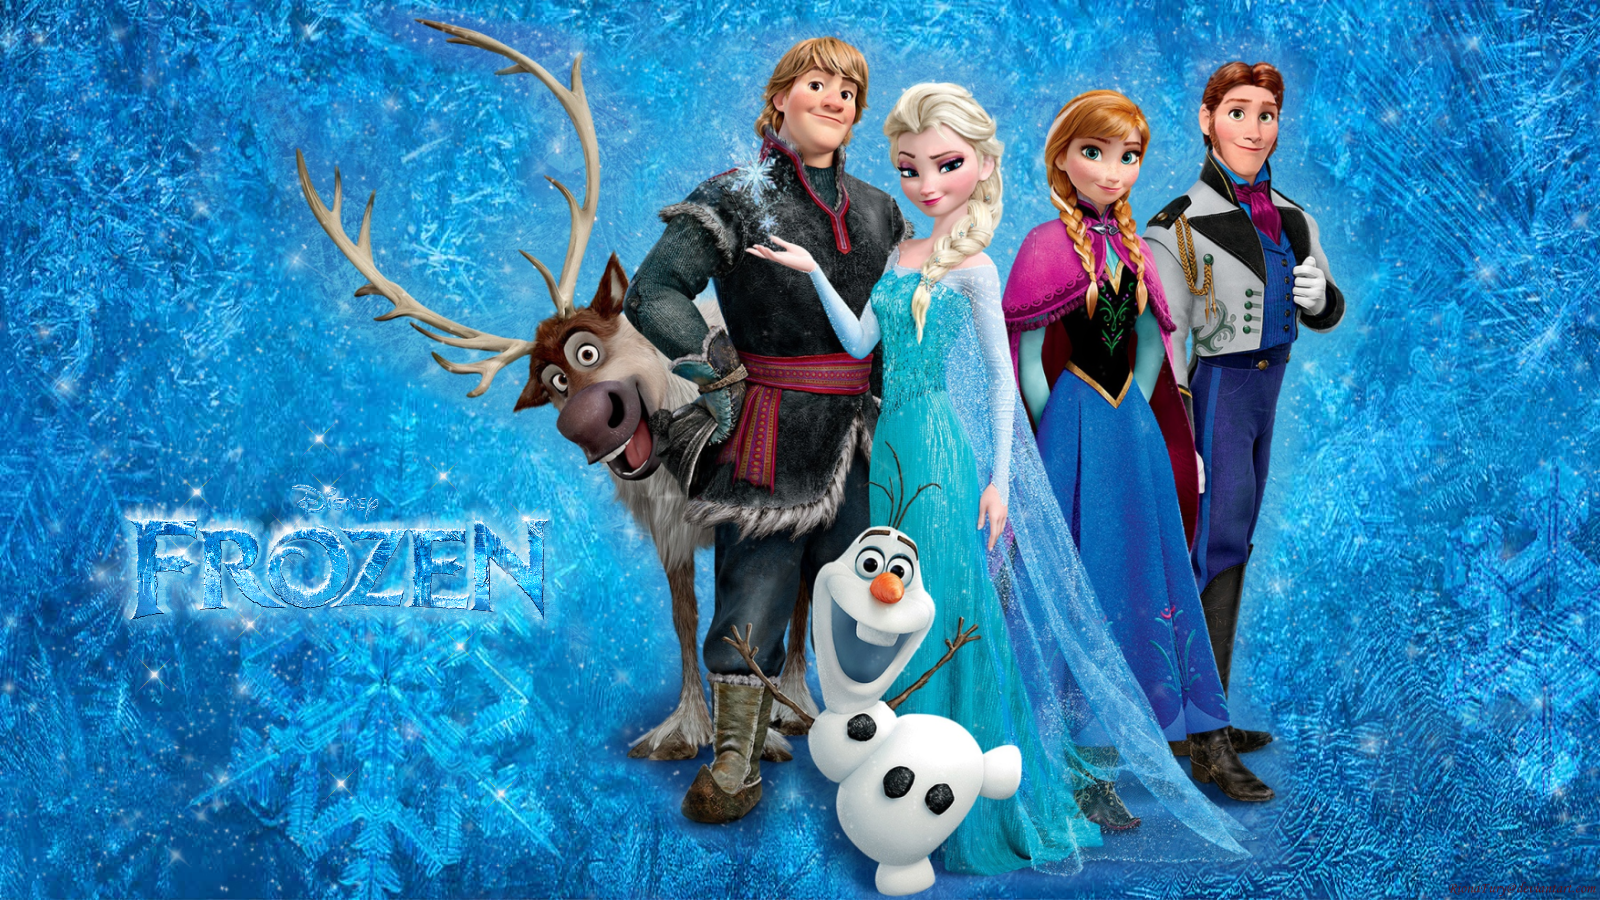 Disney frozen wallpaper